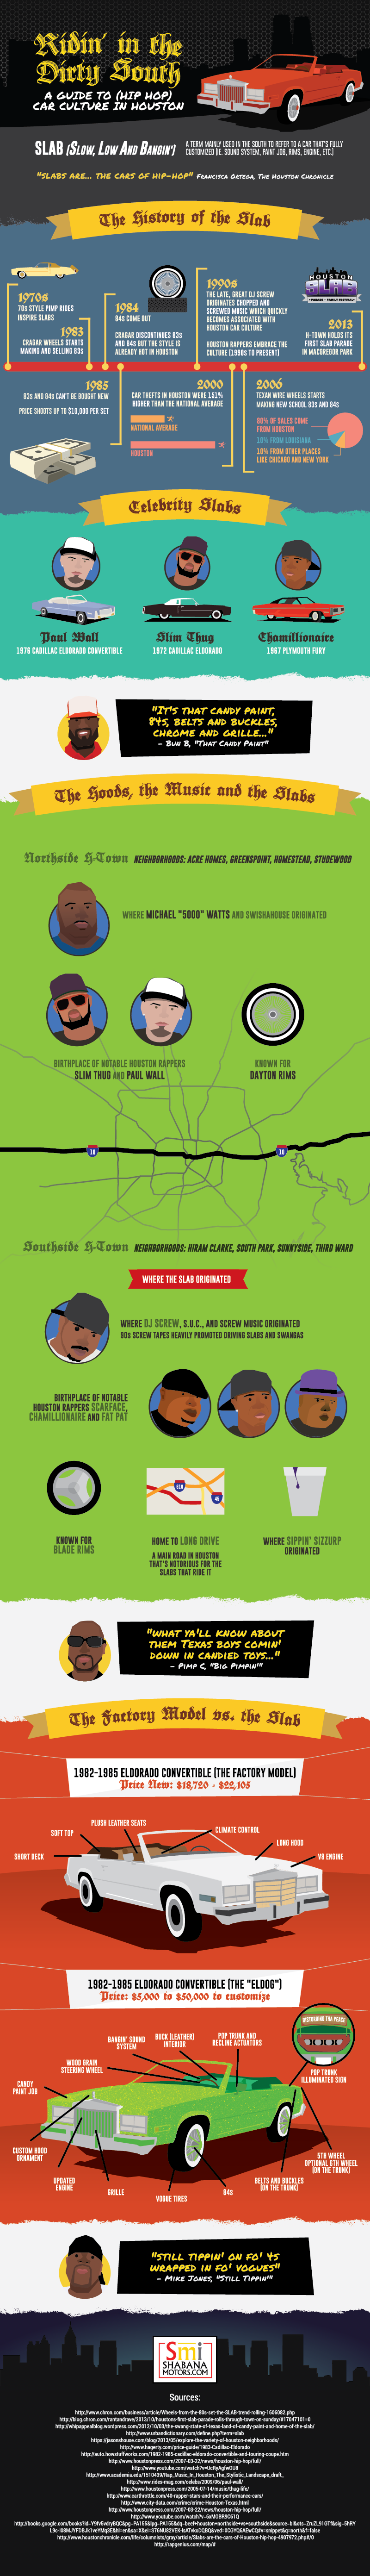 Riding Dirty in the South   Infographic   Final